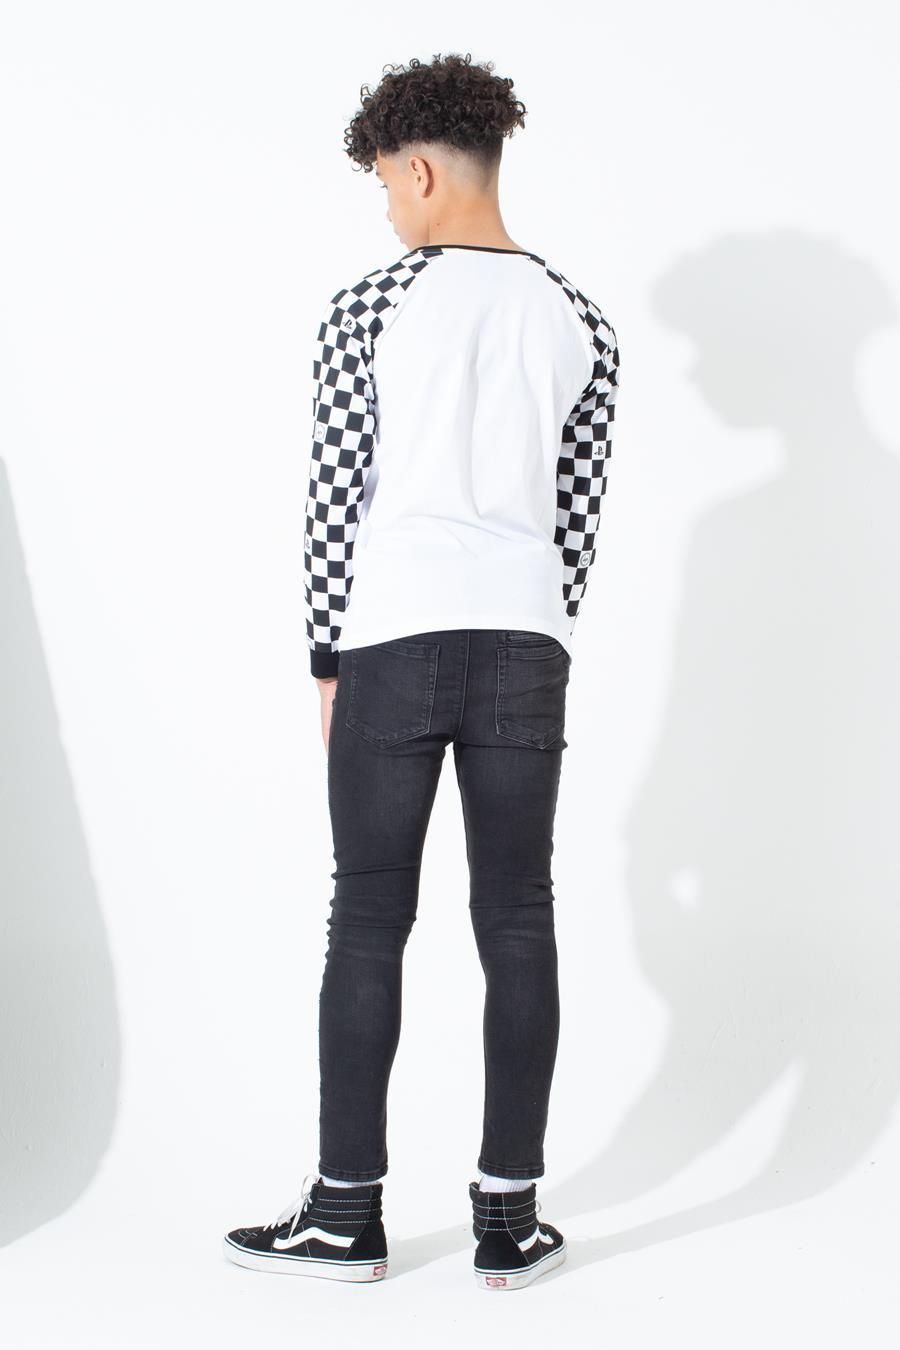 Hype Playstation White Checkerboard Kids L/S T-Shirt